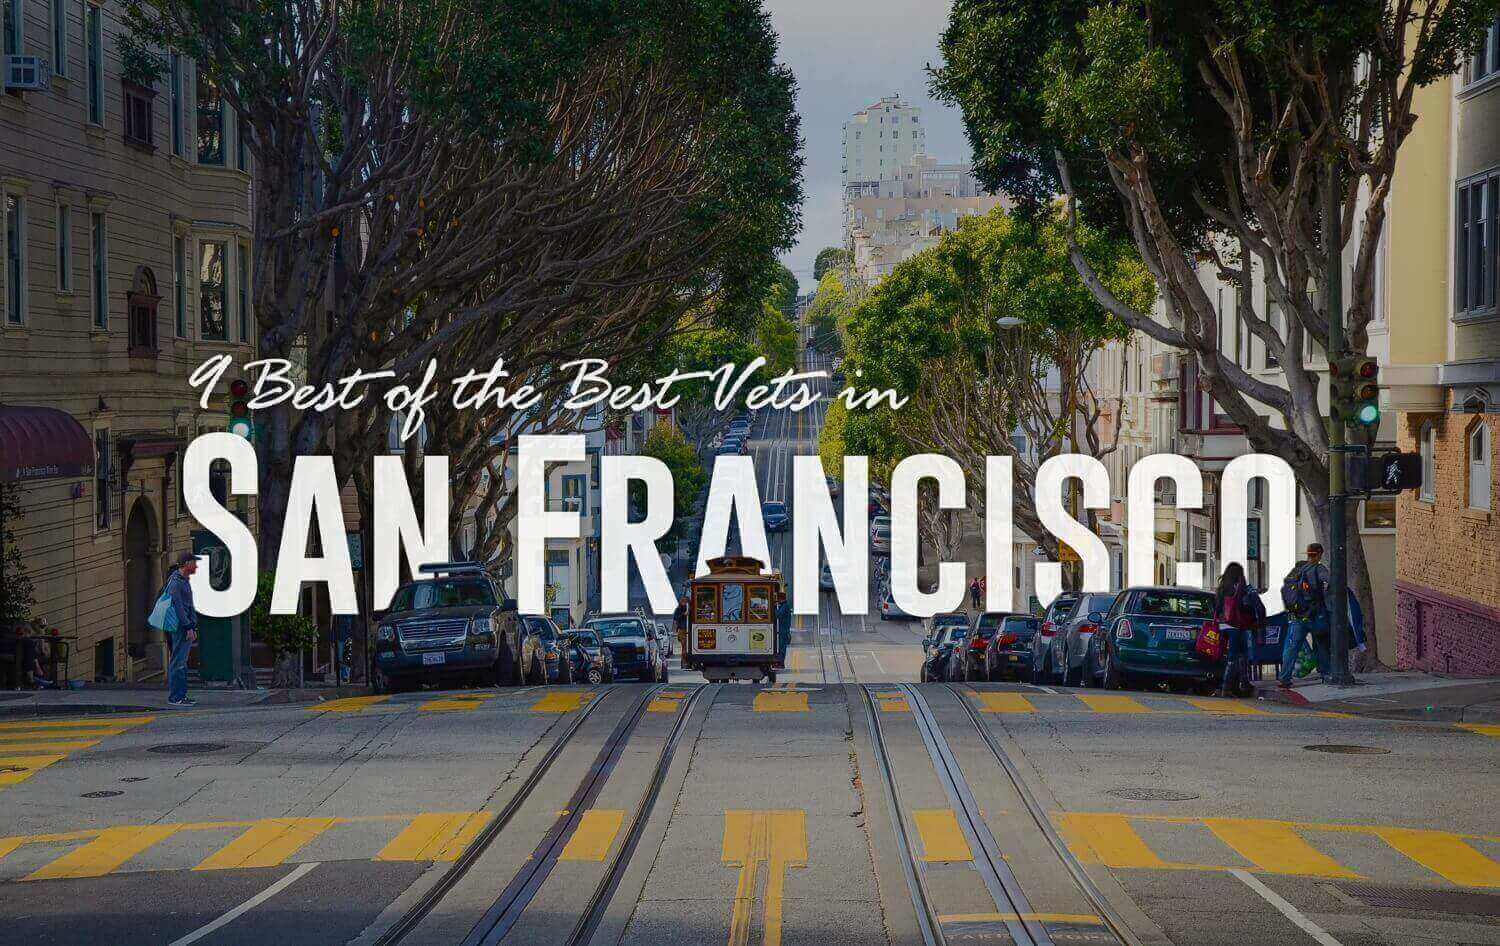 9 Best of the Best Vets in San Francisco